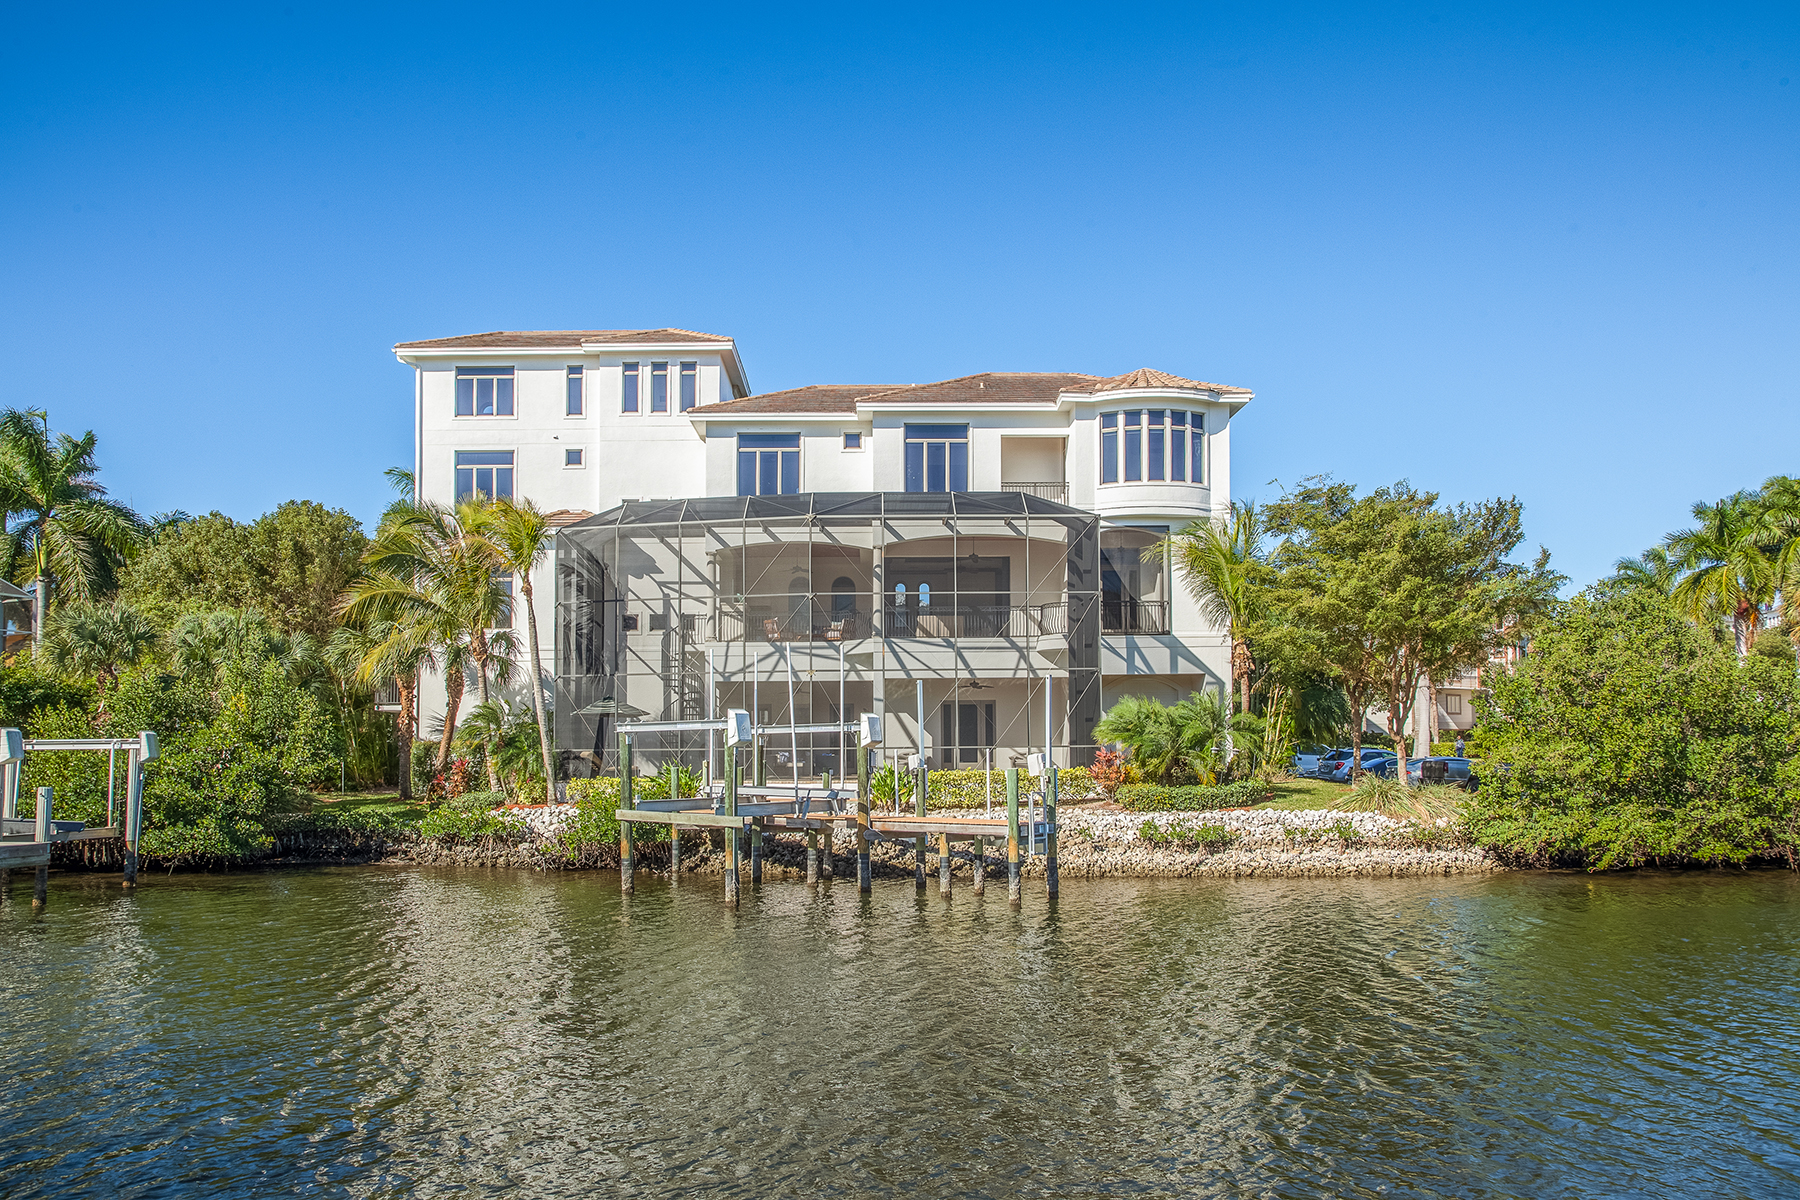 Additional photo for property listing at BAYFRONT GARDENS 240  Barefoot Beach Blvd,  Bonita Springs, Florida 34134 United States